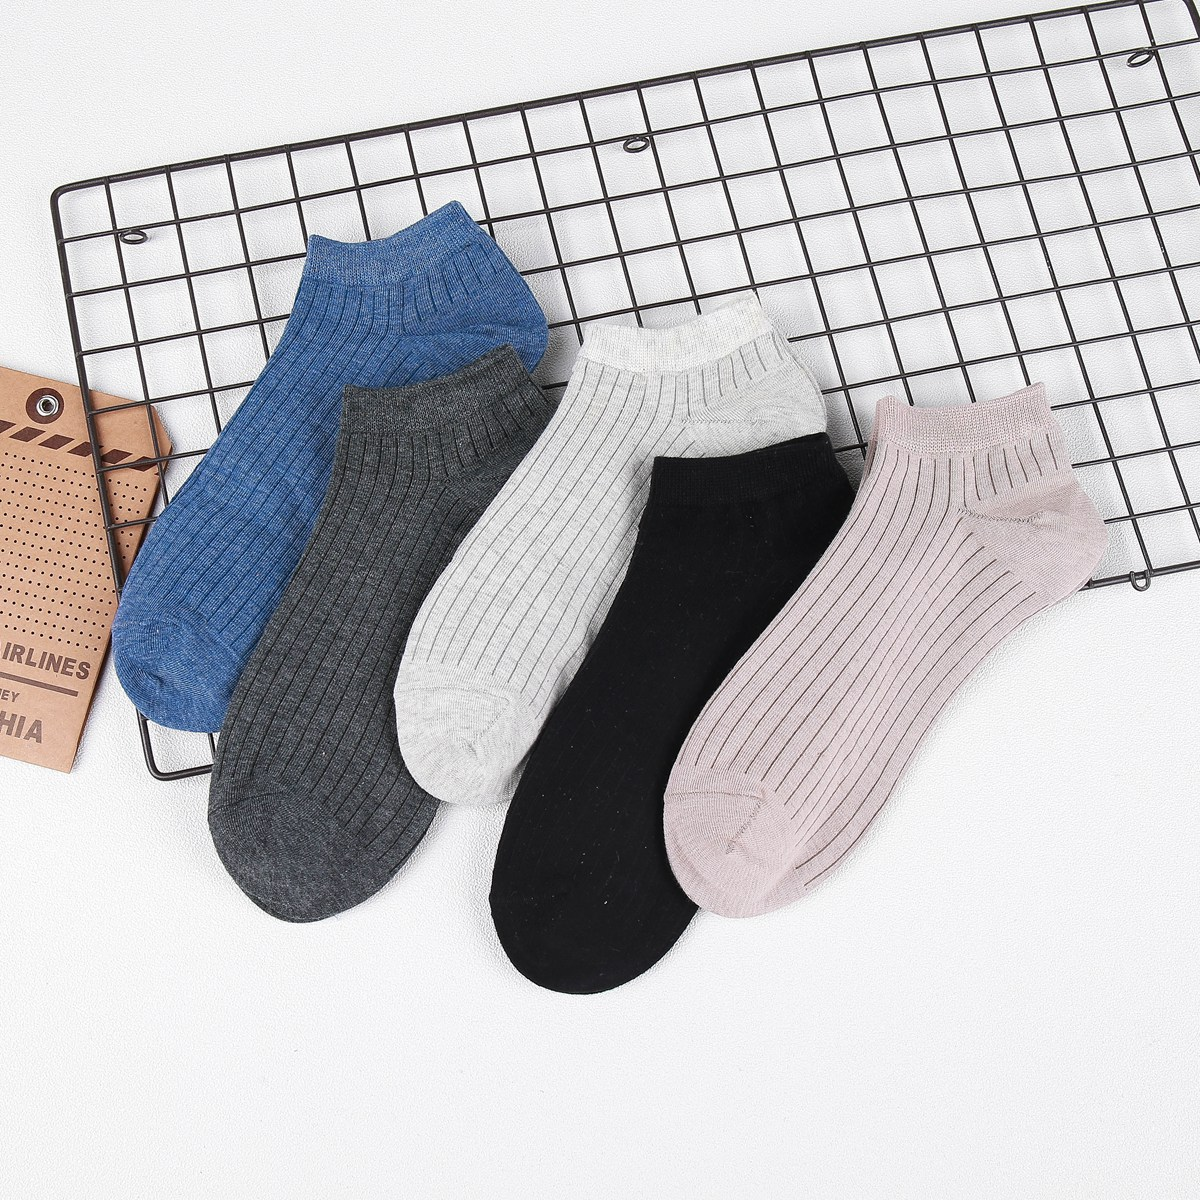 Gift Box 5Pairs/Lot Mens Boat Socks Pure Color Spring and Summer Vertical Bar Classic Cotton Breathable Stealth Invisible Socks